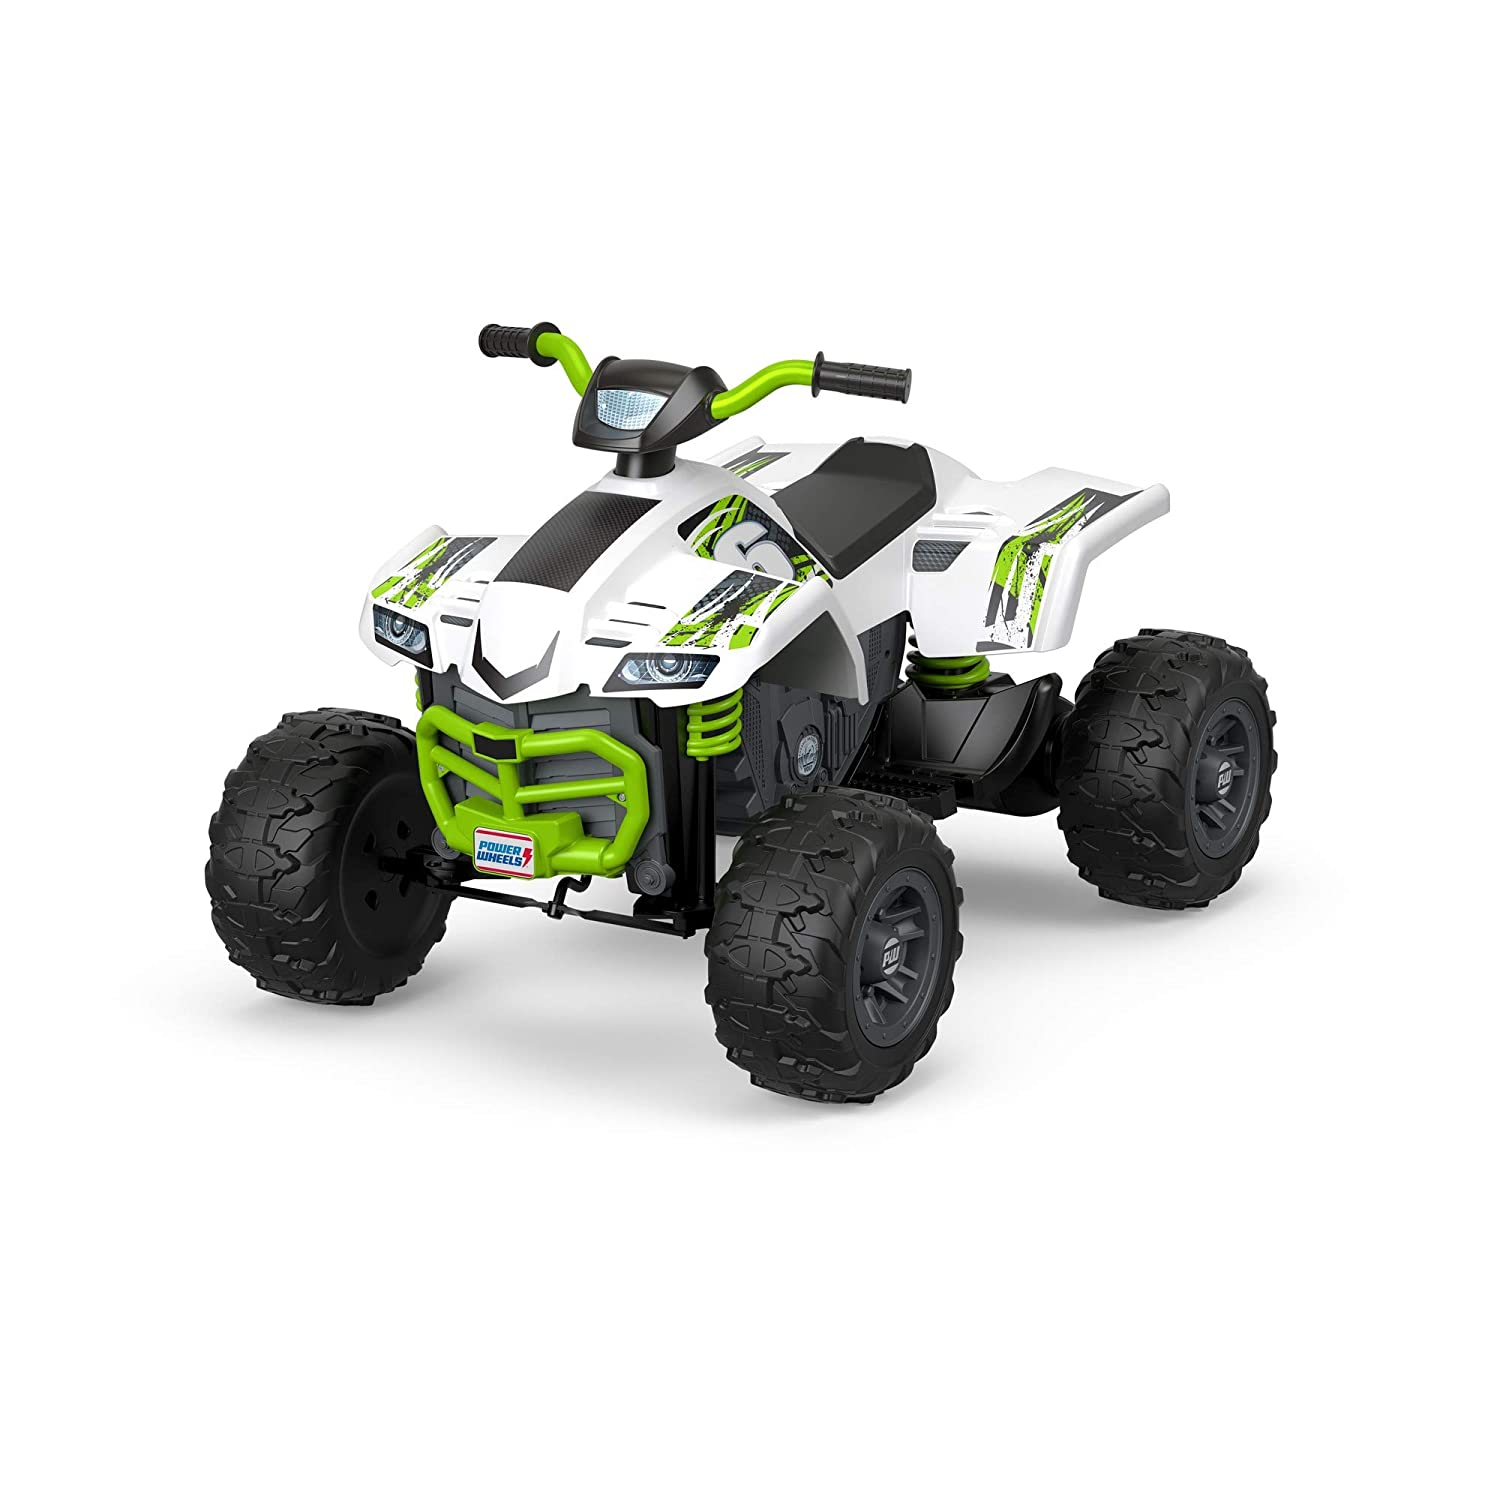 Top 8 Best Power Wheels For 3 Years Old - Buyer's Guide 5